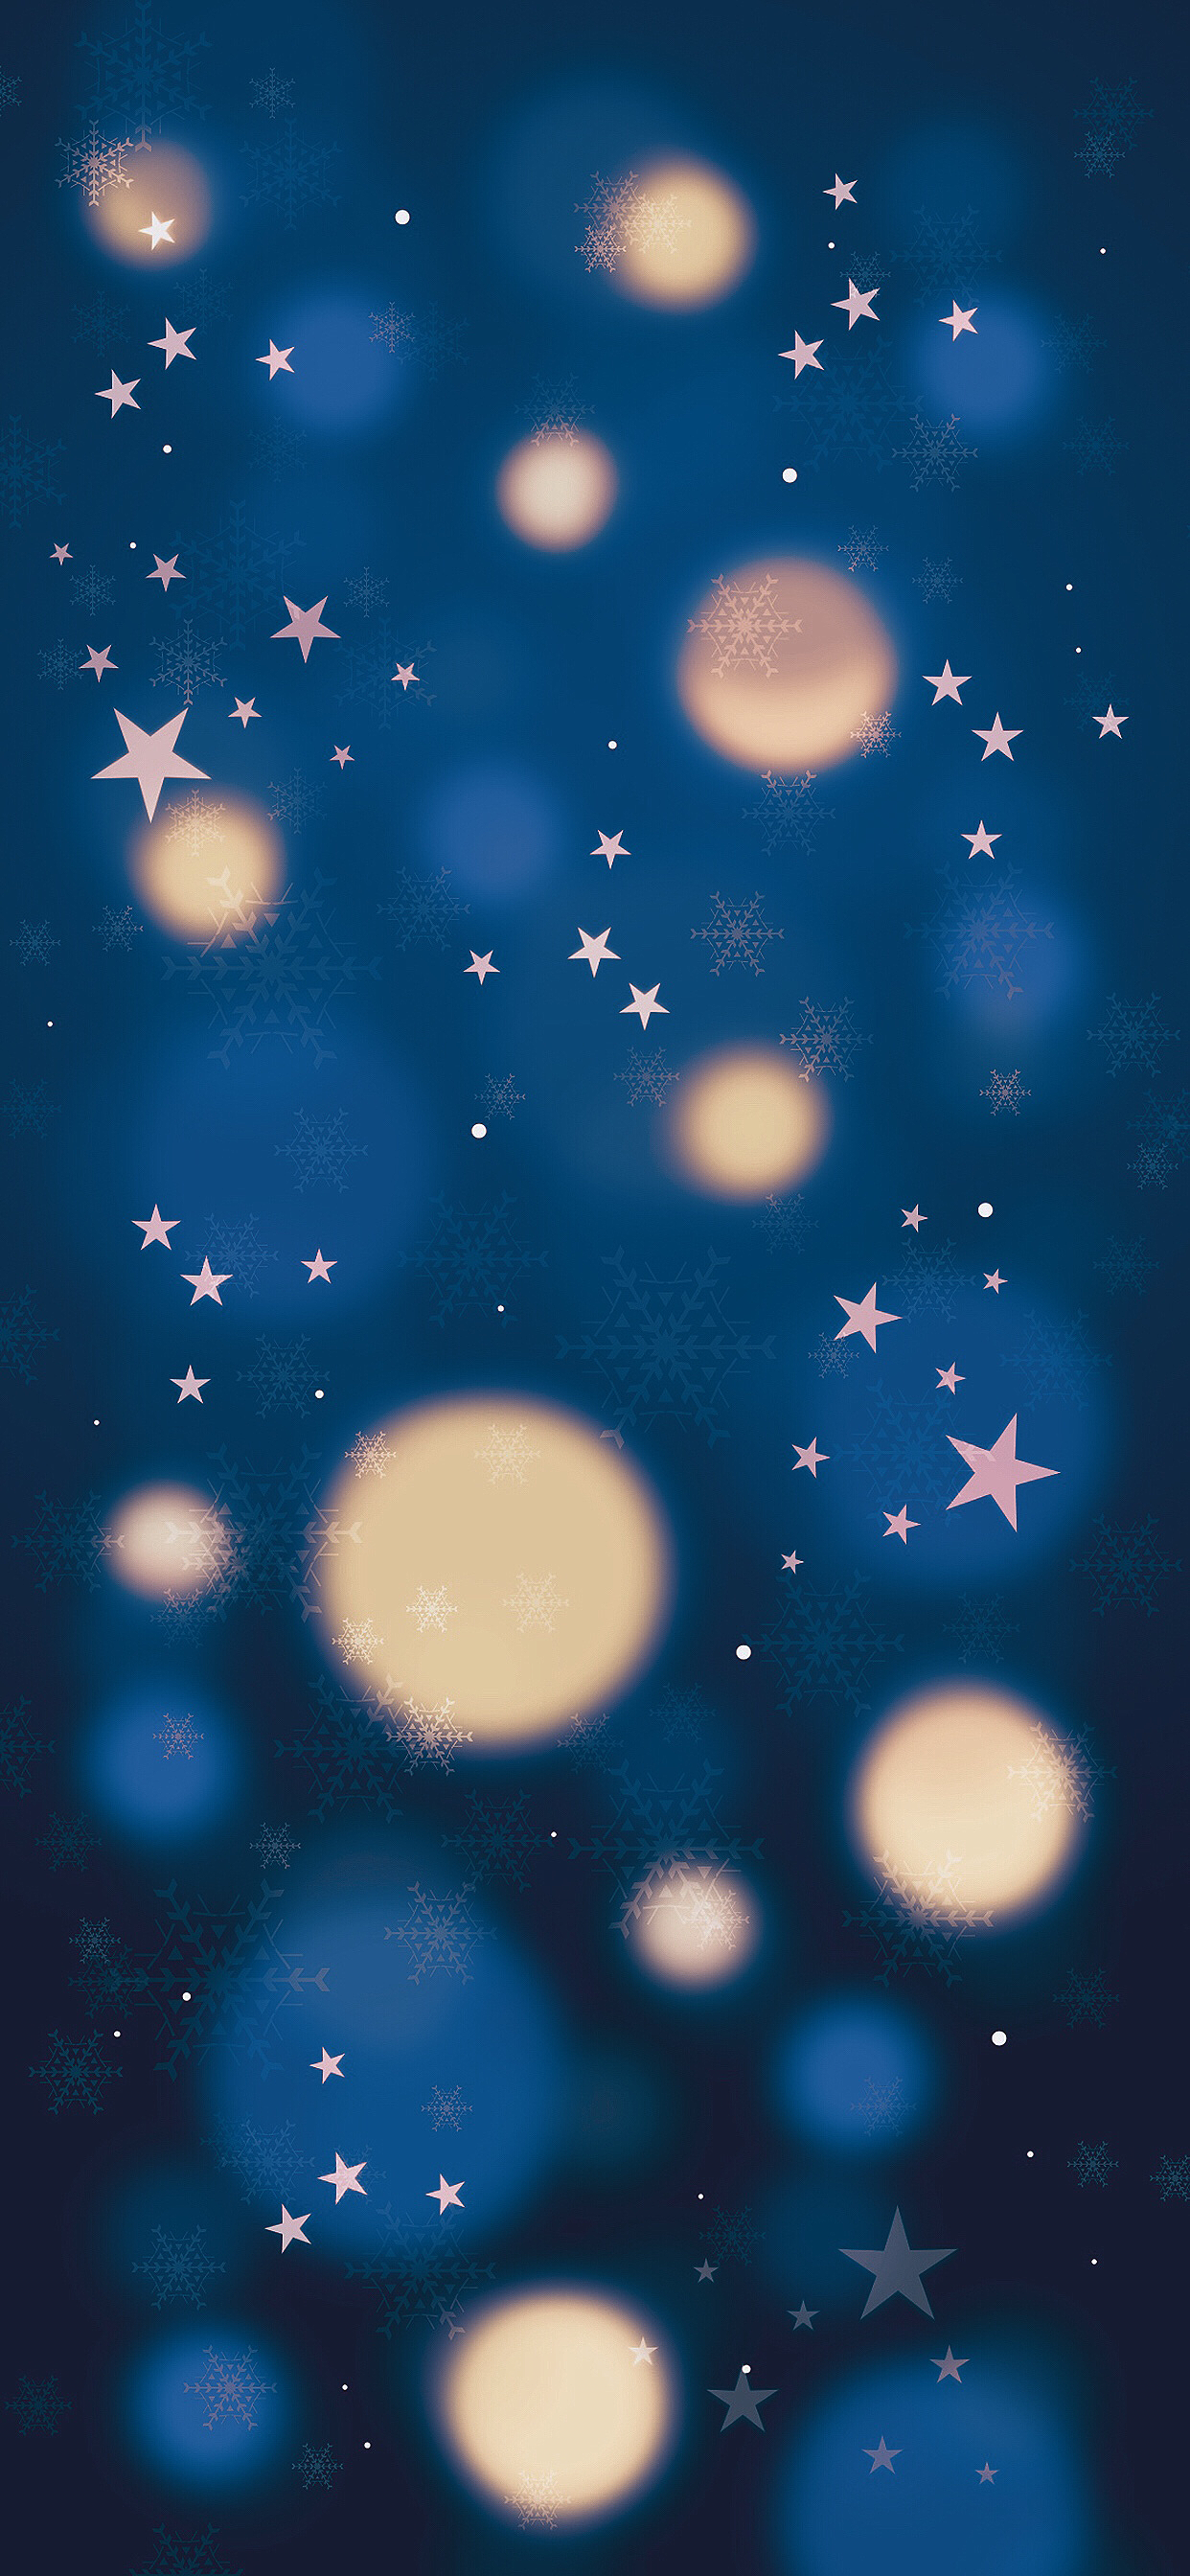 Christmas Classic Blue Gold 2018 iPhone wallpaper AR72014